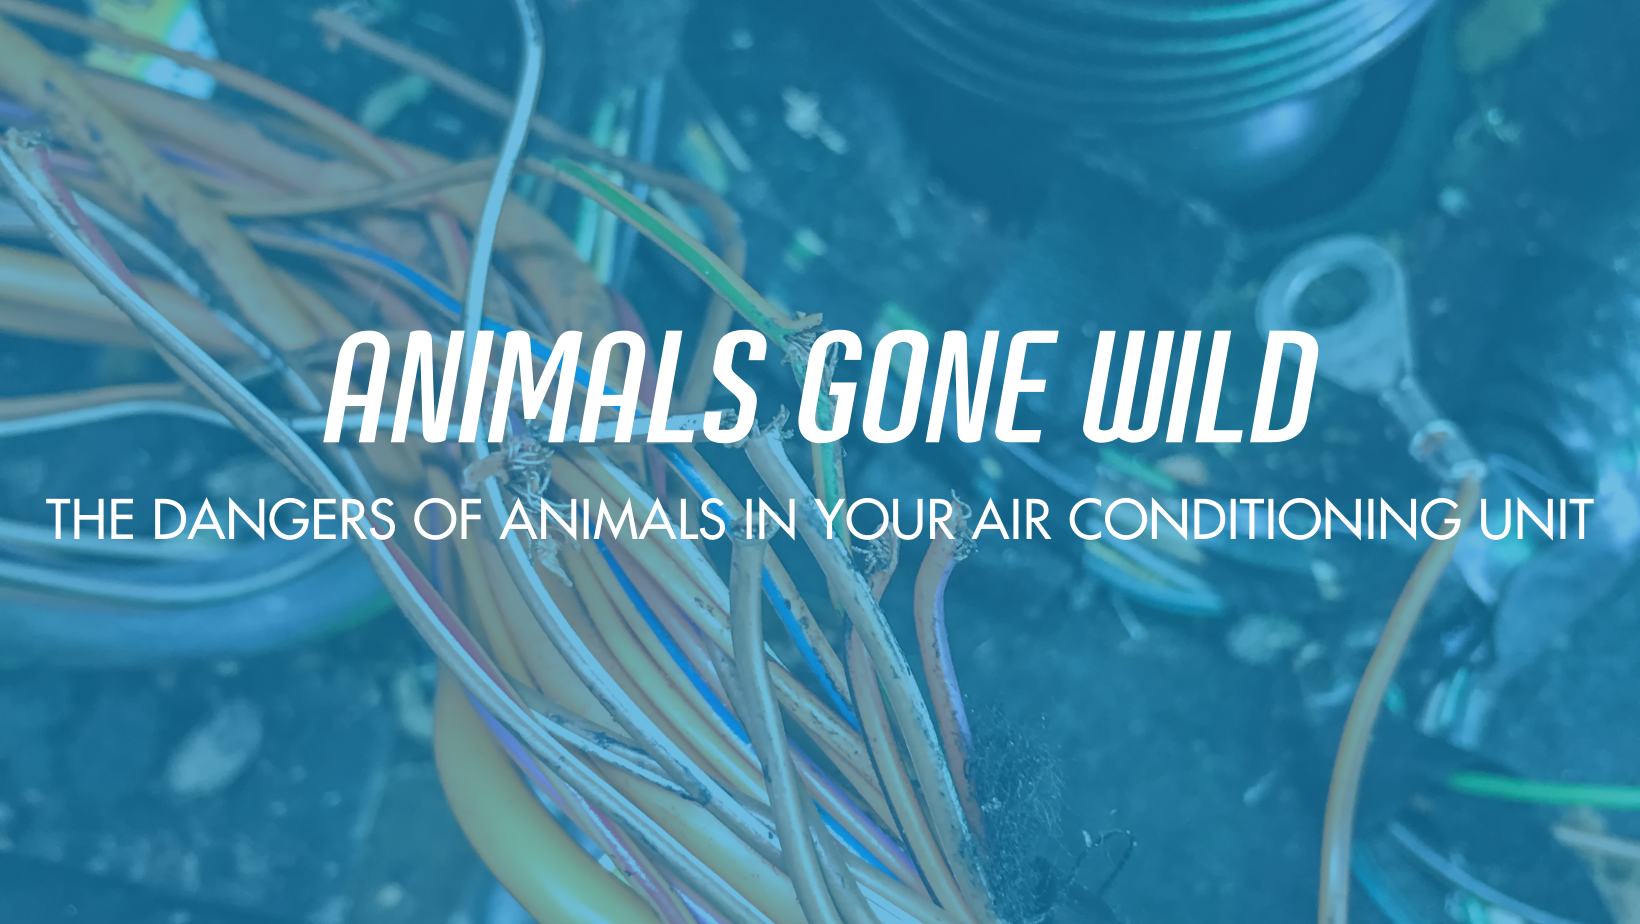 The dangers of animals in your air conditioning unit